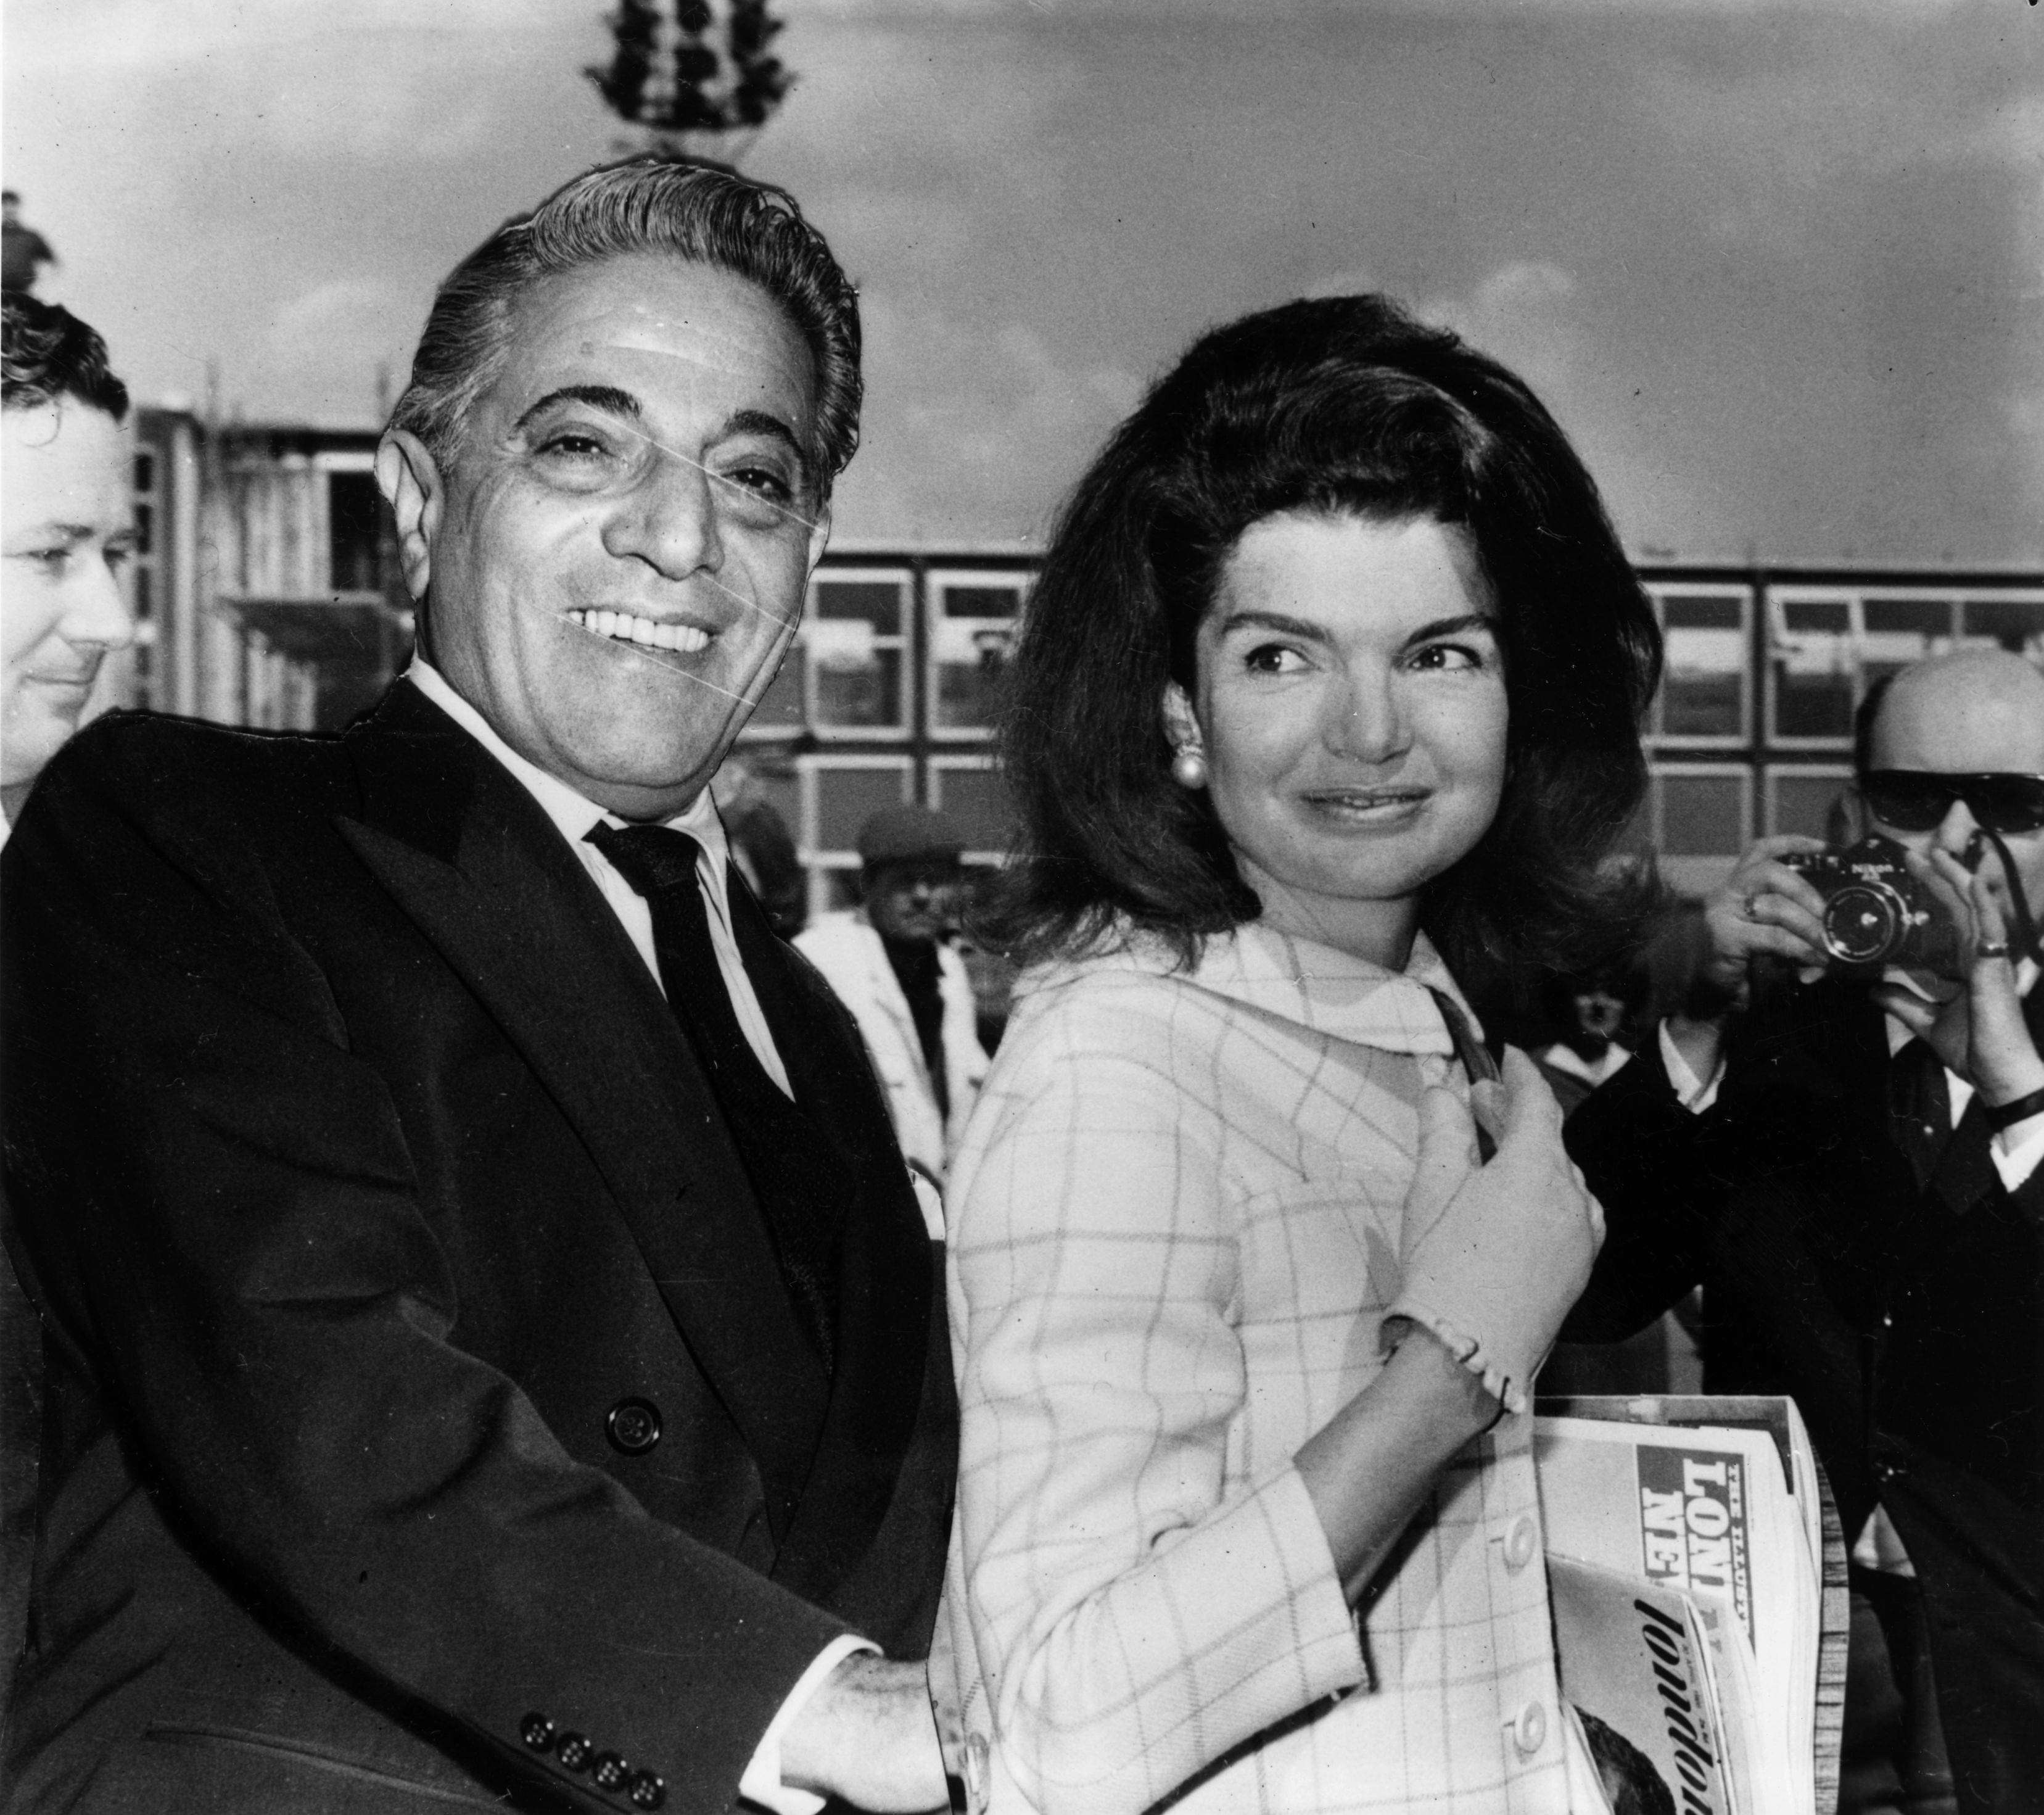 Aristotle Onassis and Jackie Kennedy take a photo together on October 18, 1968   Photo: Getty Images